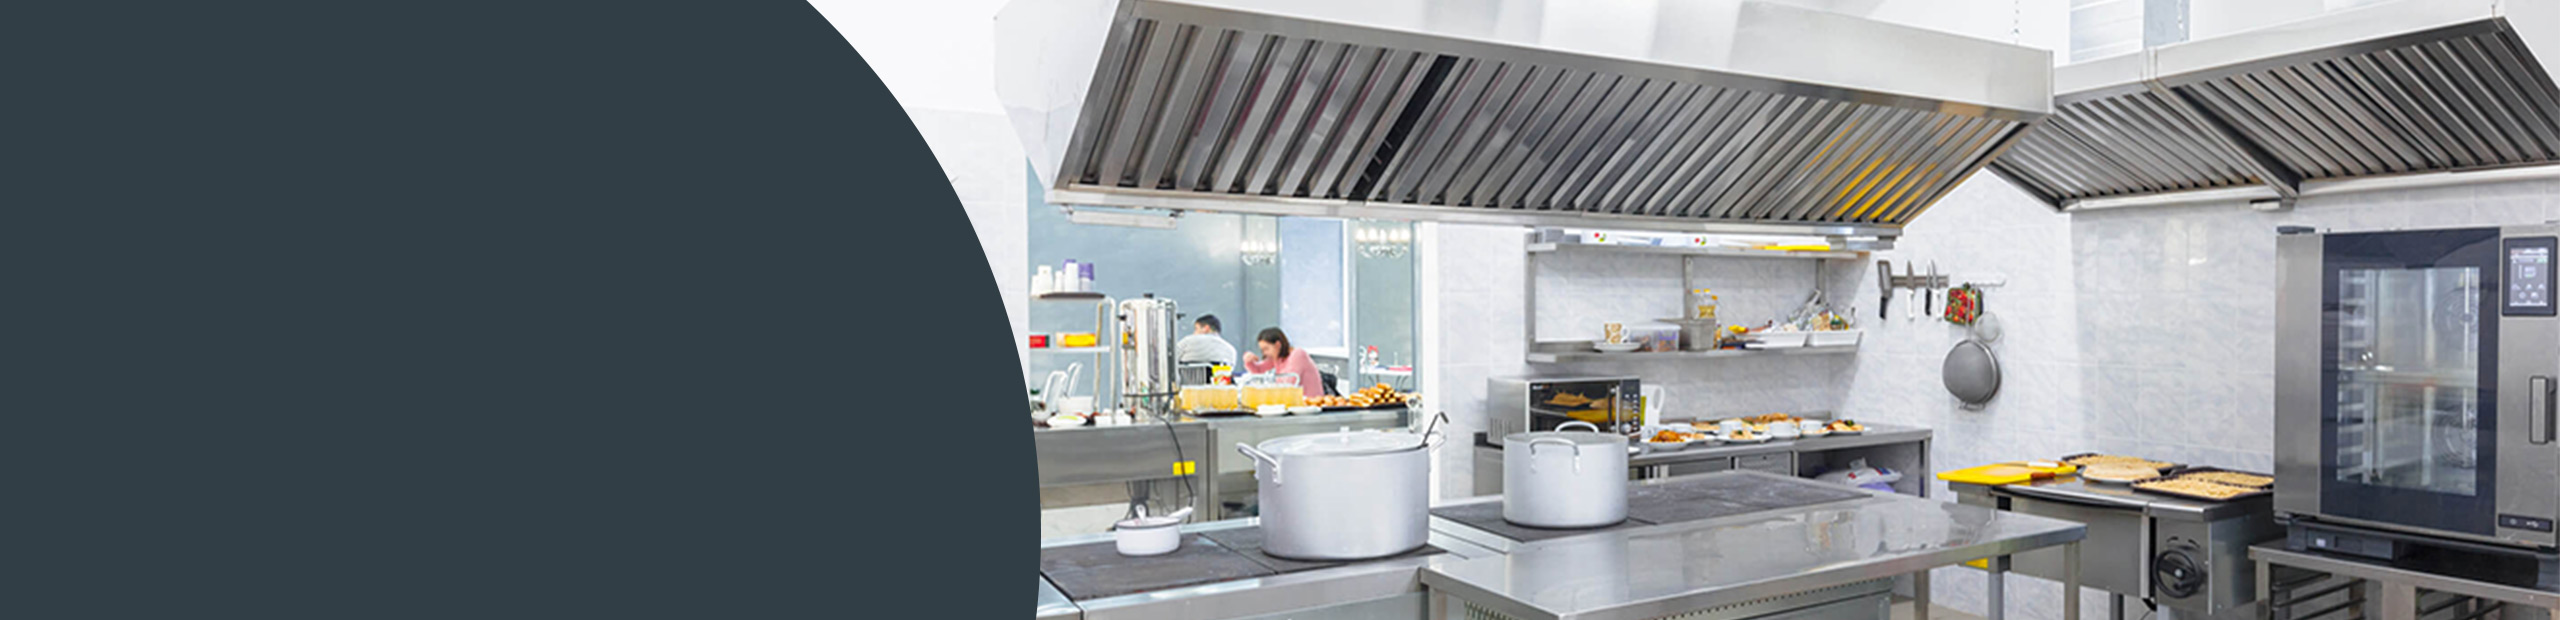 Commercial Kitchen Cleaning London Image